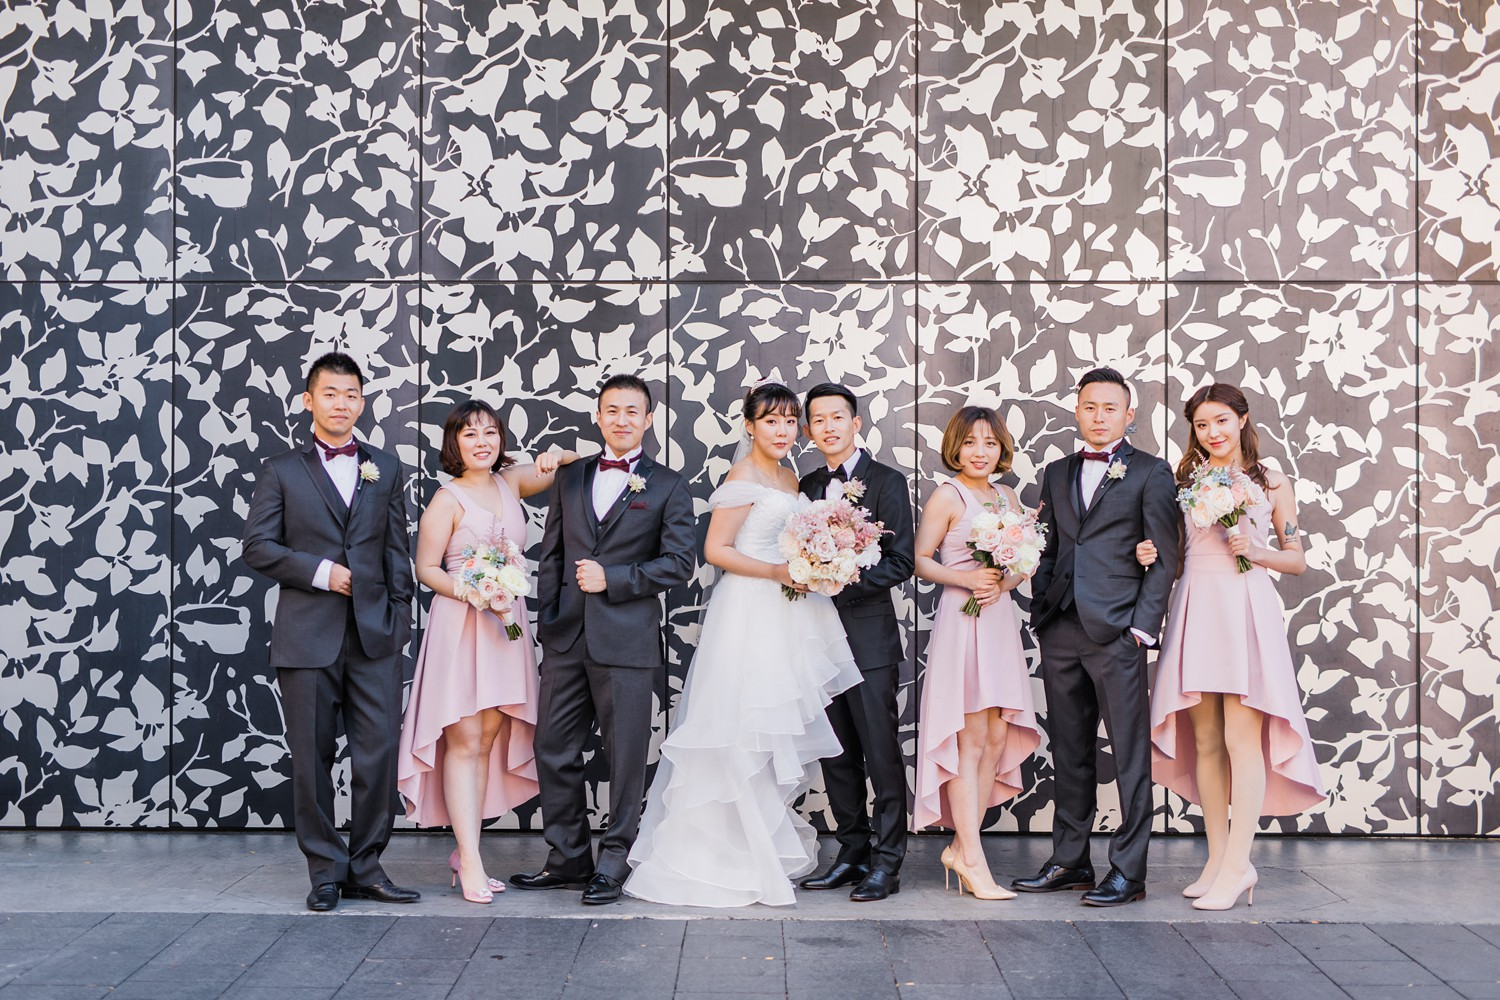 Wedding Party Photos at Luxury Yorkville Vinci Toronto Four Season Hotel Wedding Photos with Chinese Bride and Groom